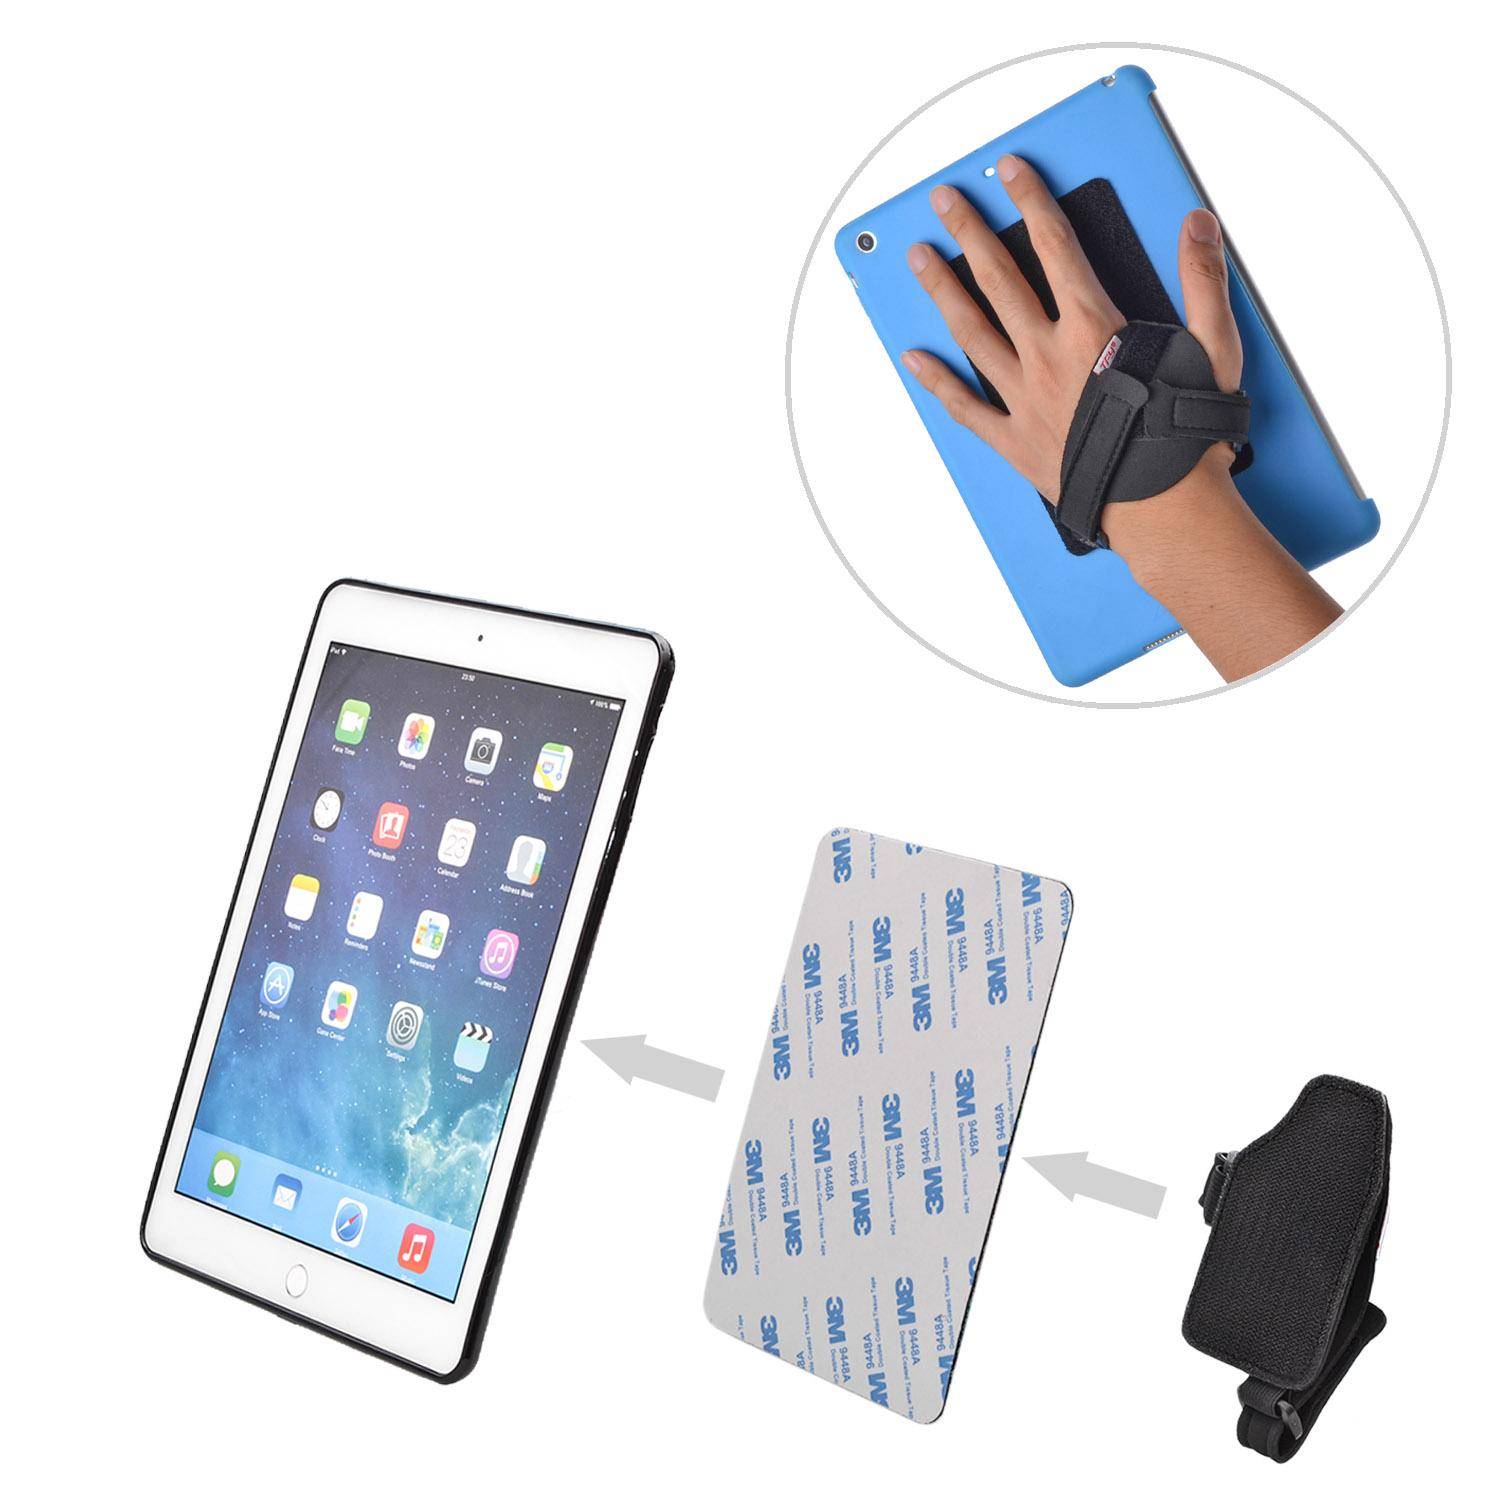 TFY Hand-Strap plus Hook & Loop Fastening Tape Adhesive Patch - DIY Detachable Hand-Strap for Smartphone, Tablet PC and More